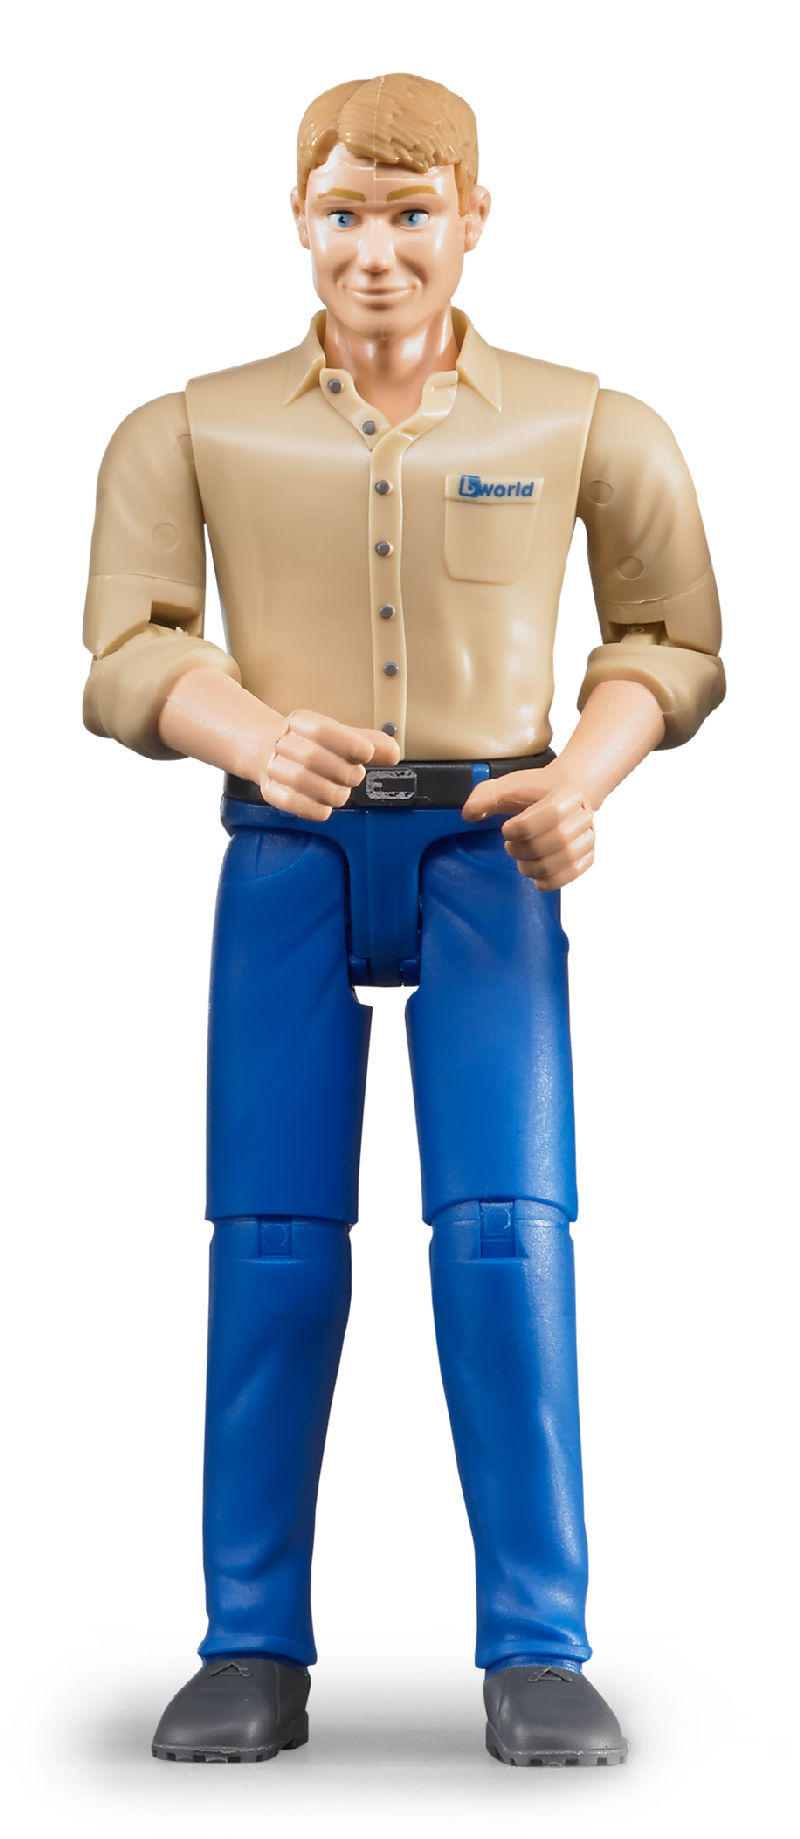 60006 - Bruder Toys Male Driver_Construction Worker